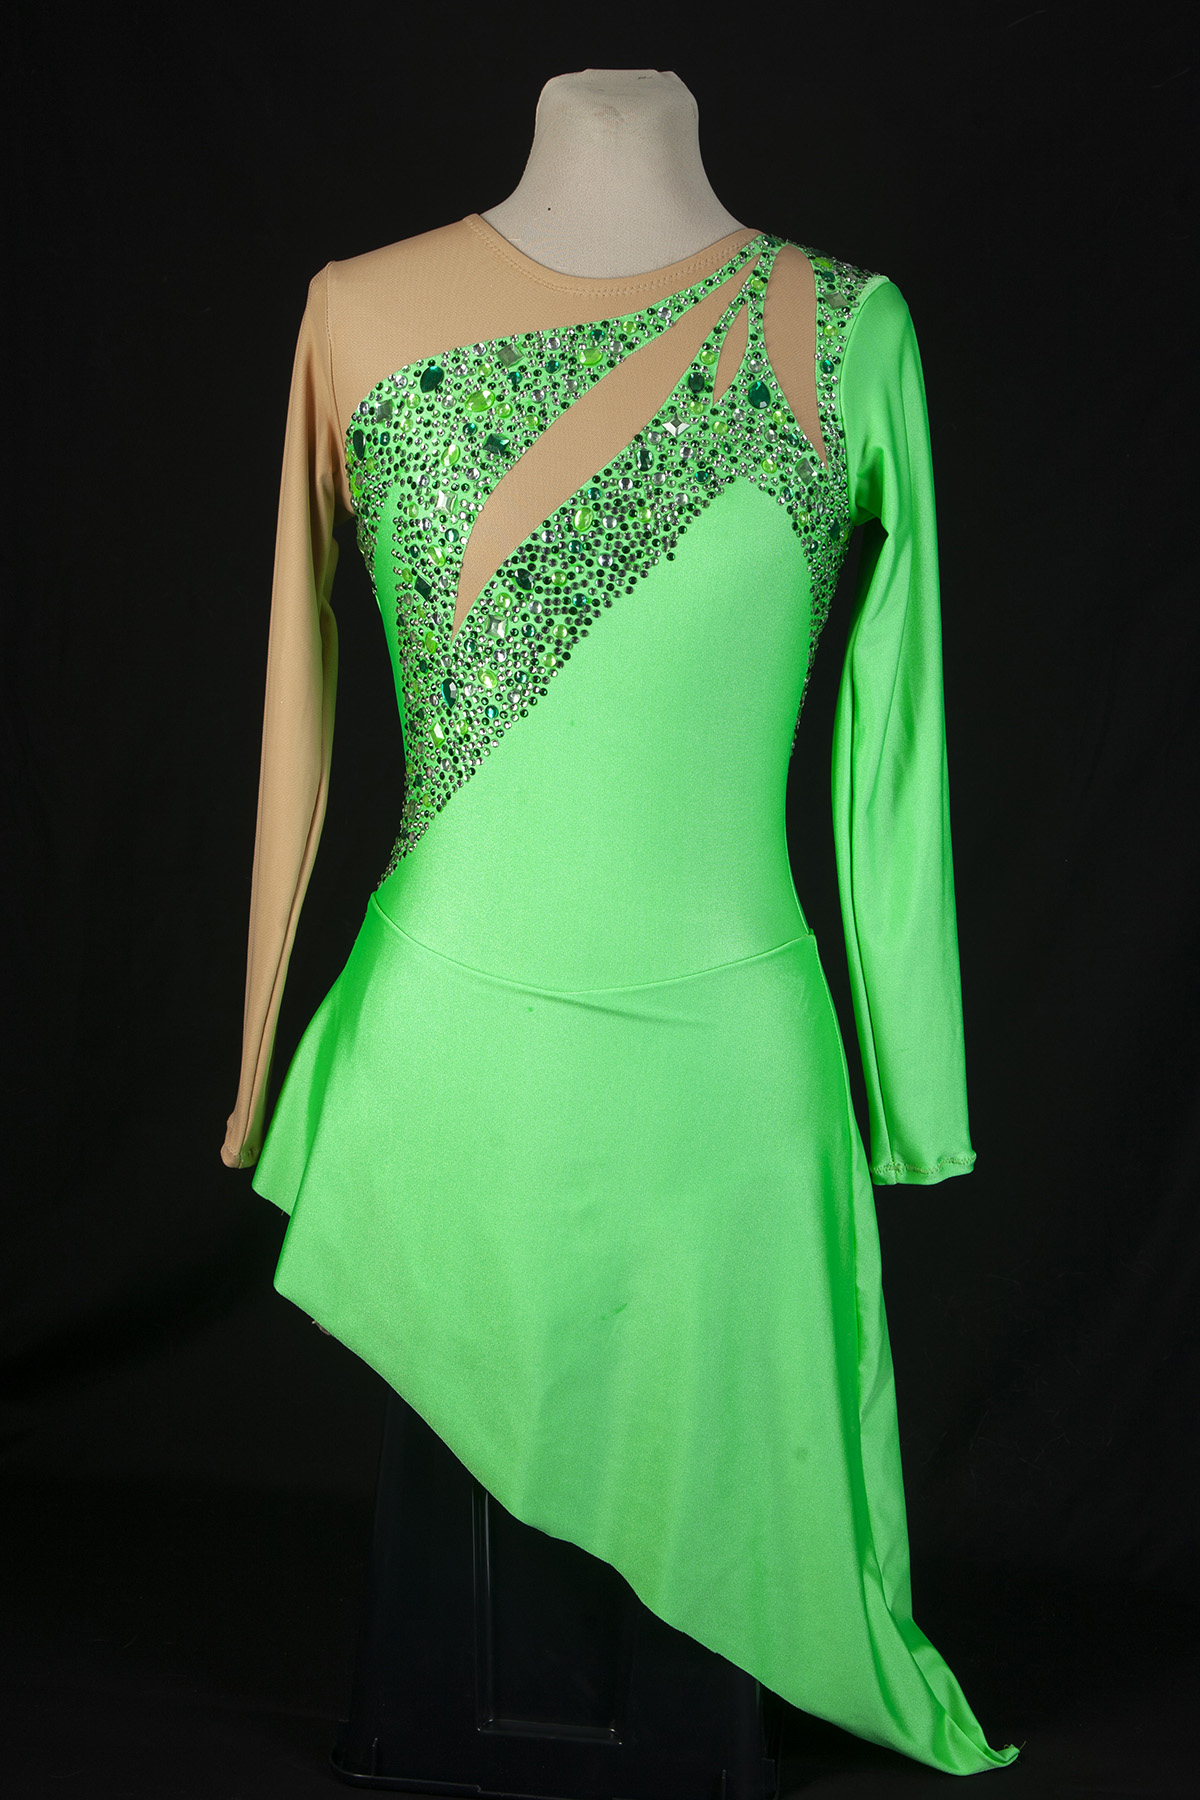 A formal, green figure skating dress, heavily encrusted with clear and green rhinestones.  Front view of the dress, against a black background.